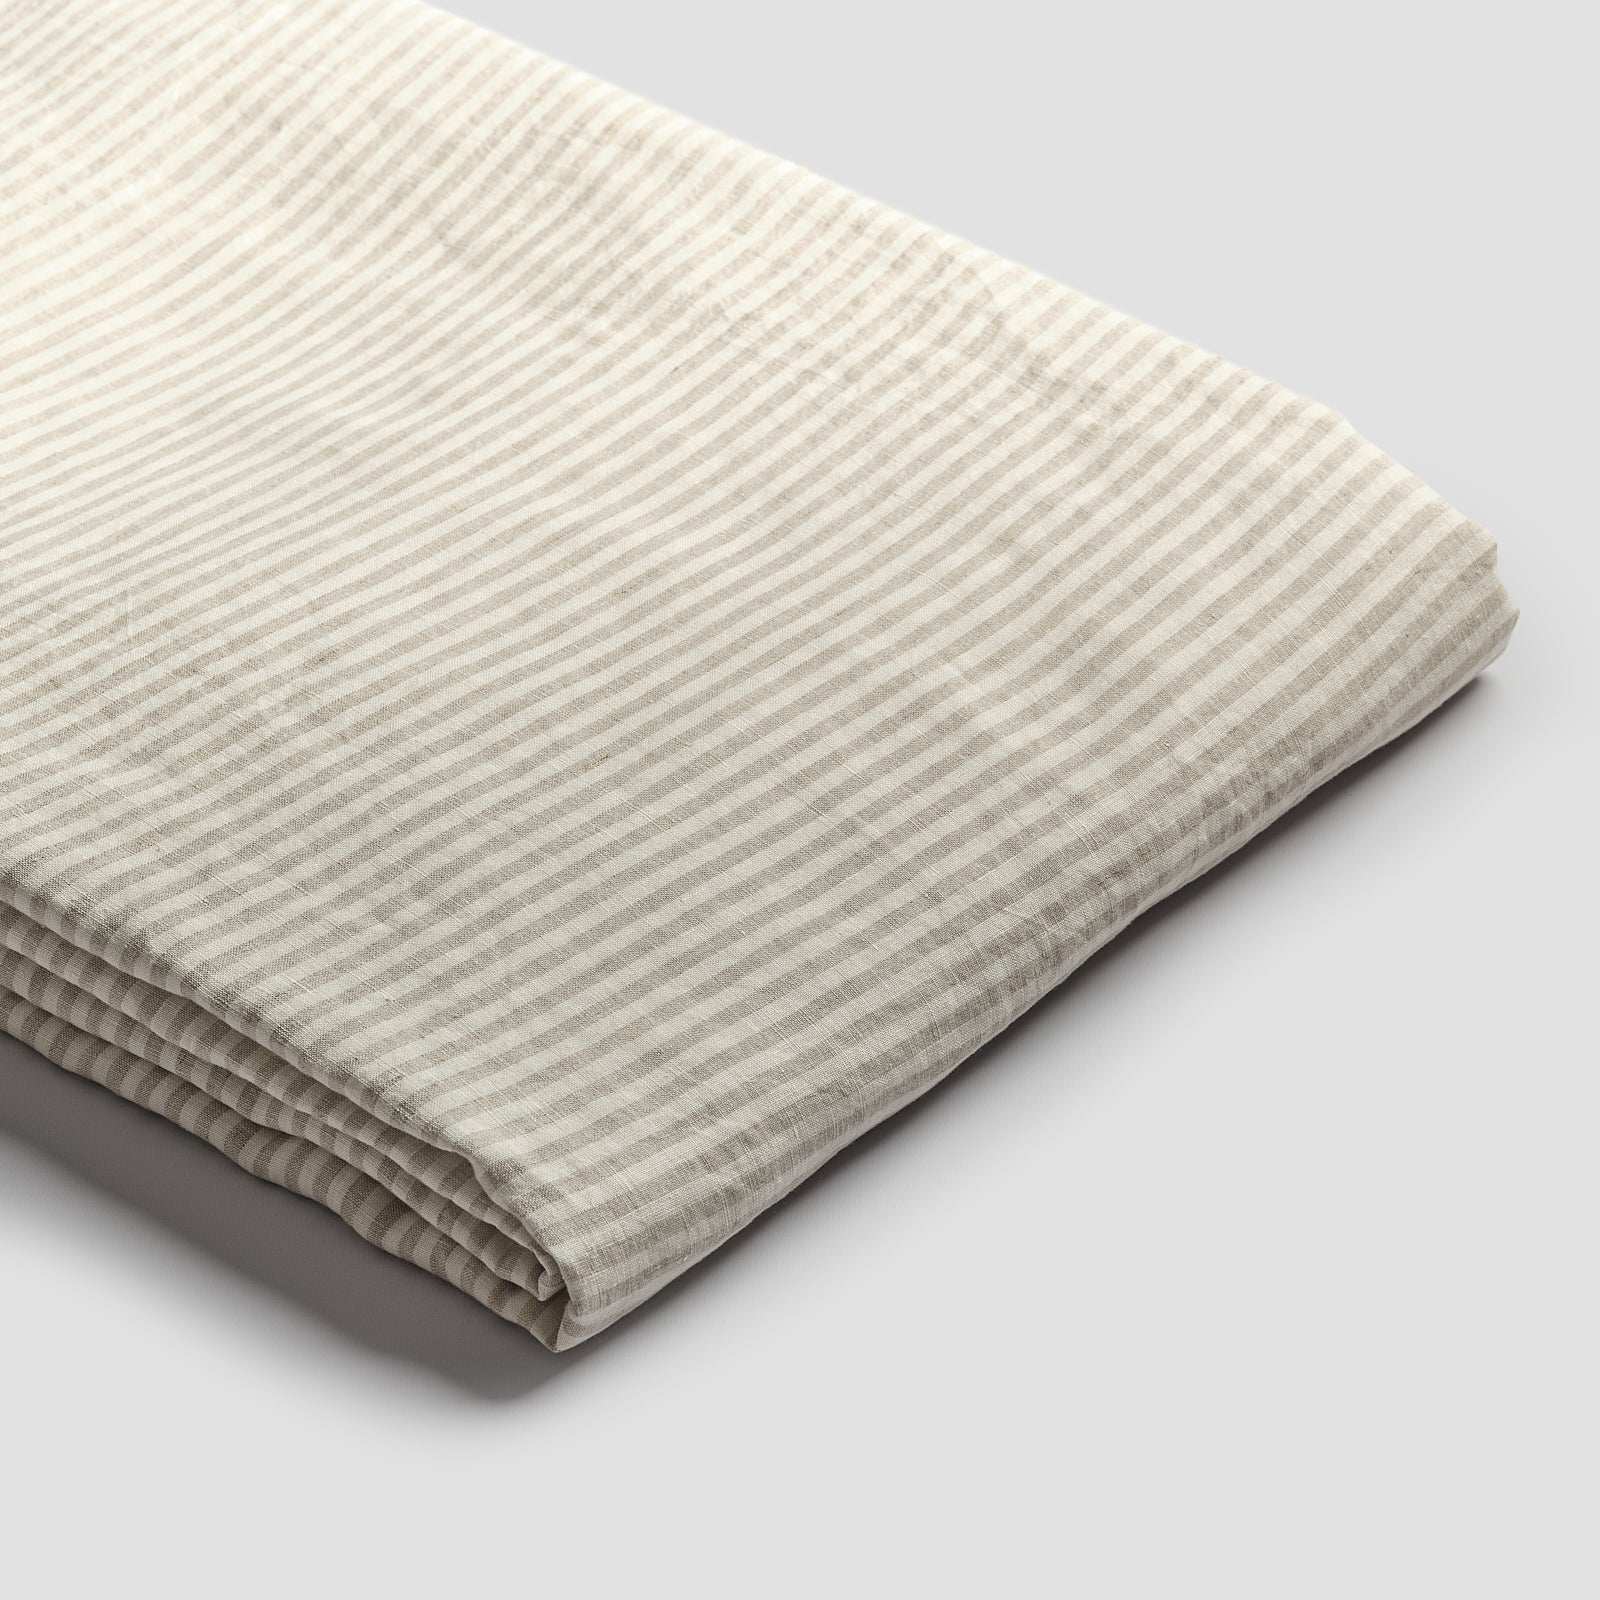 Piglet Oatmeal Stripe Linen Duvet Cover Size Super King   100% Natural Stonewashed French flax